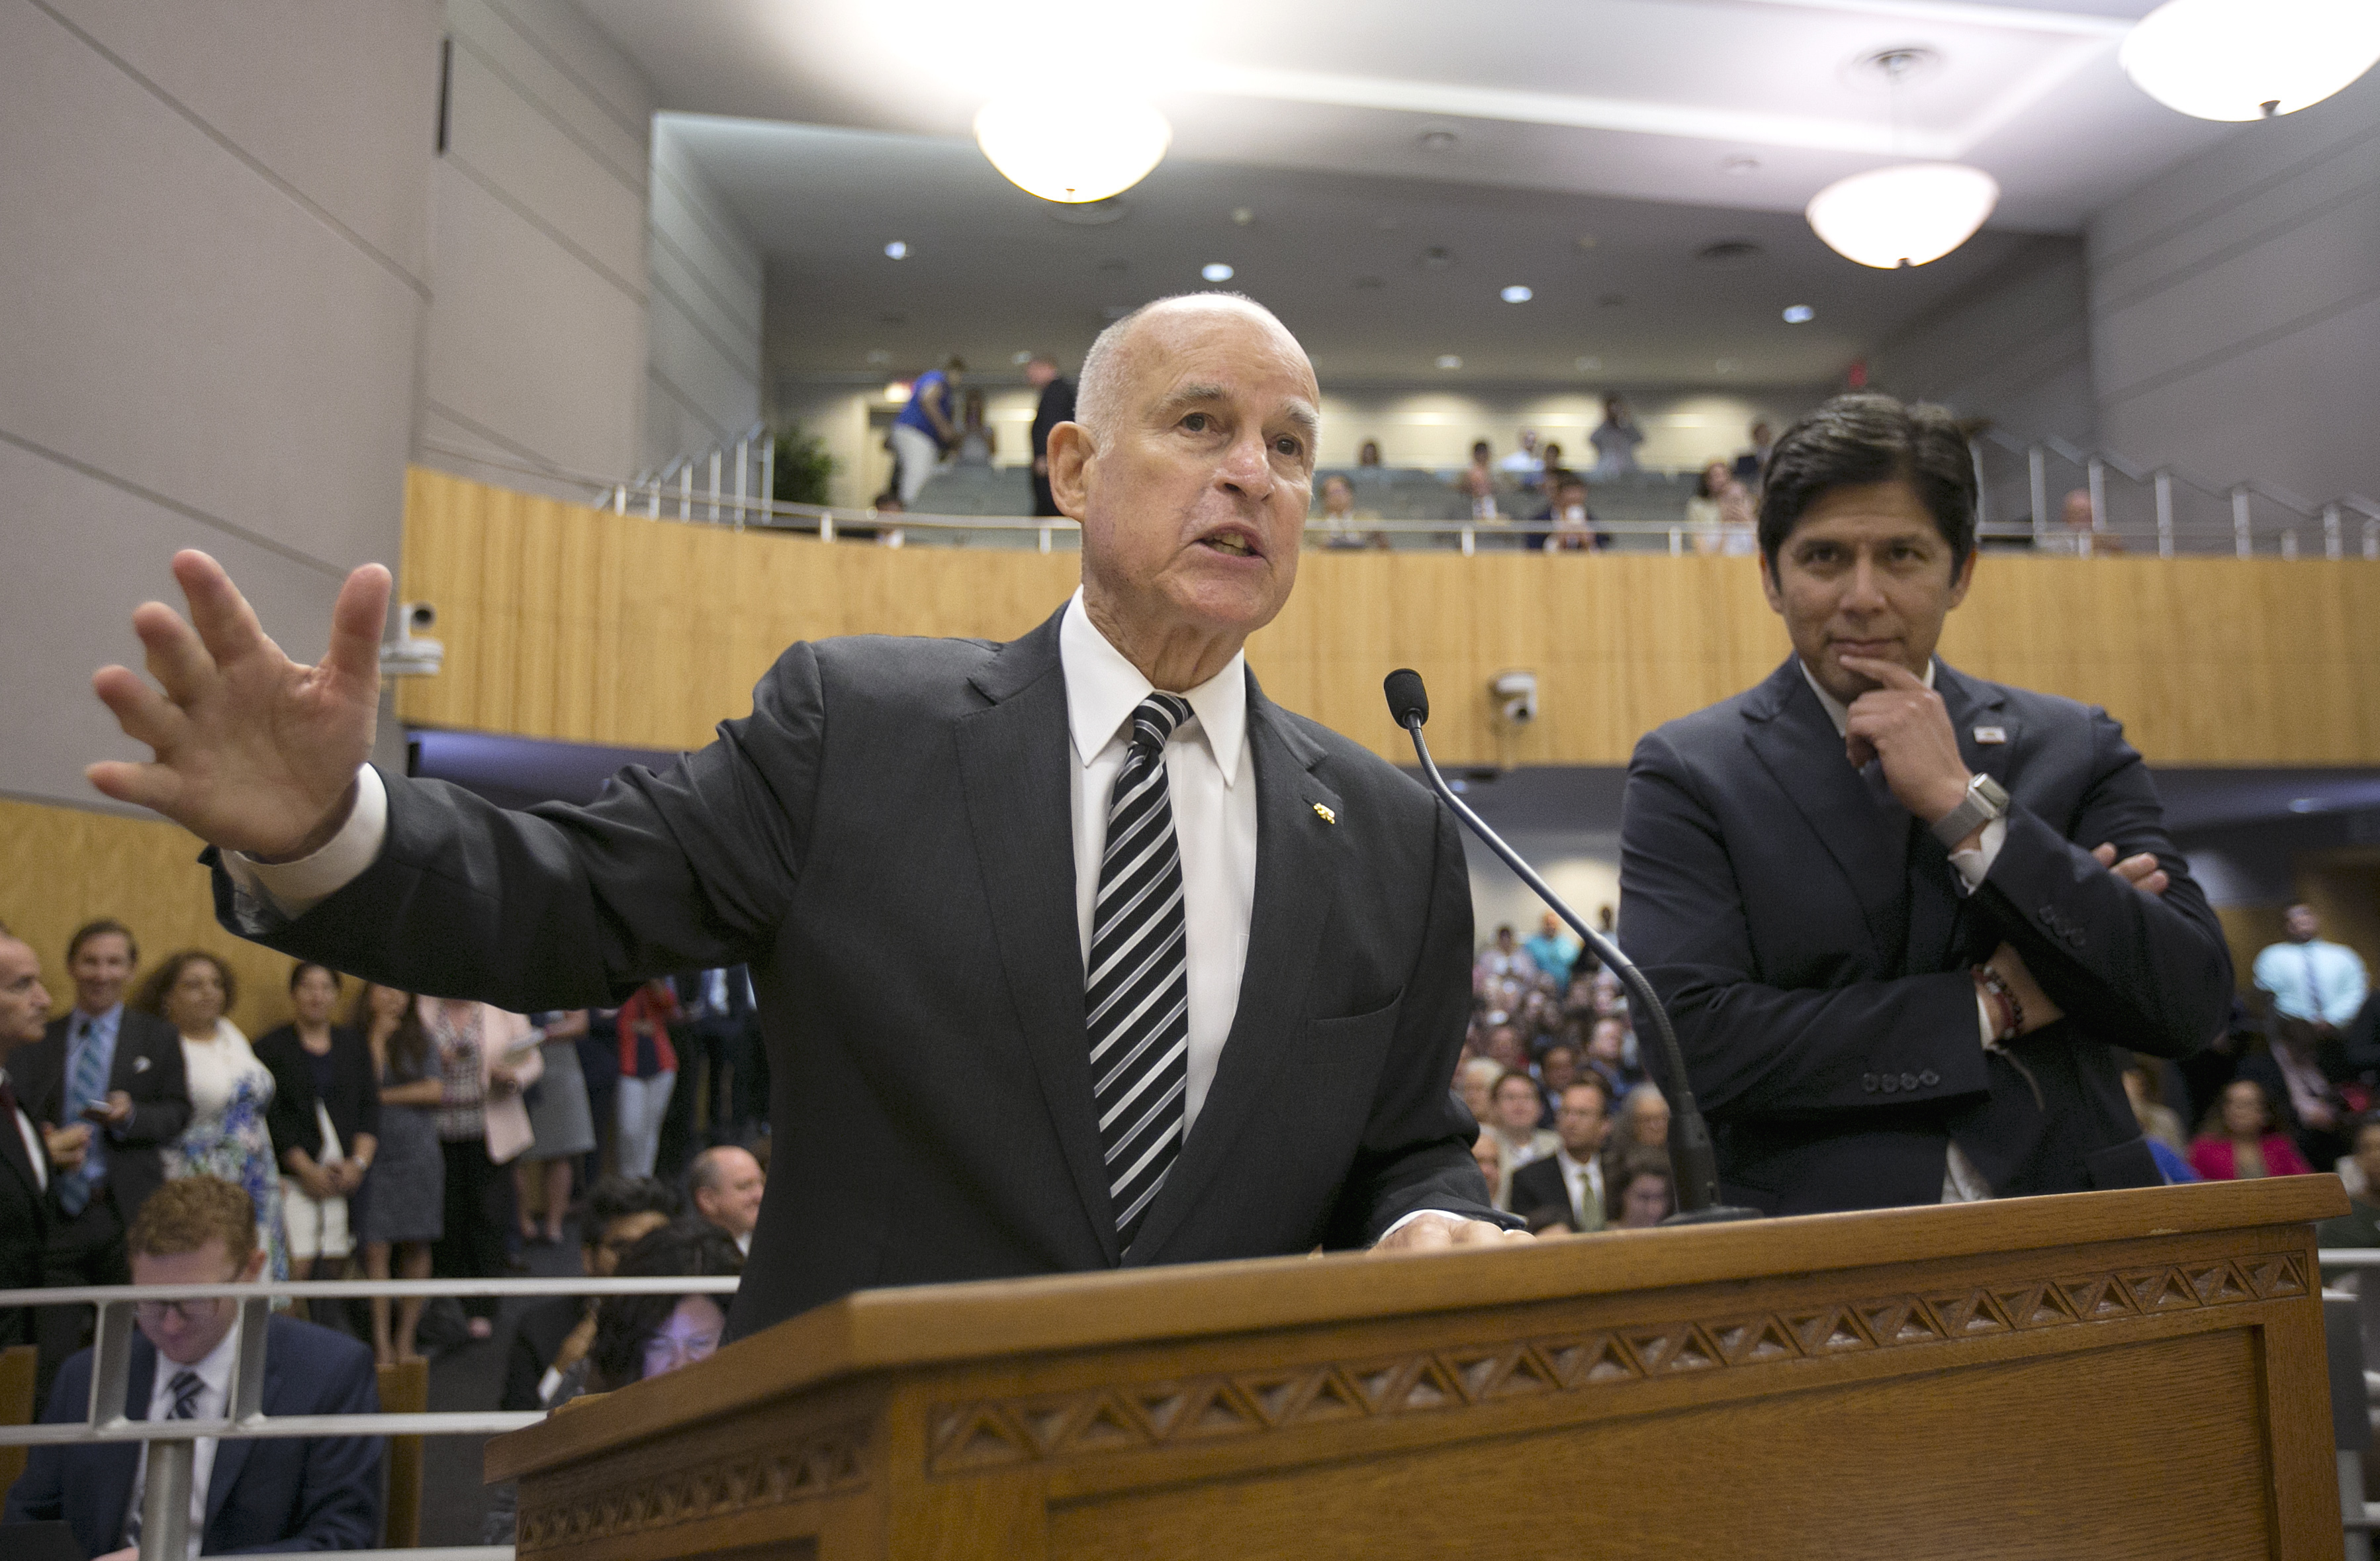 California Climate Change-2 FILE - In this July 13, 2017 file photo, Calif., Gov. Jerry Brown, left, testifies in support of a pair of climate change bills as Senate President Pro Yem Kevin de Leon, D-Los Angeles, looks on during a hearing of the Senate Environmental Quality Committee, in Sacramento, Calif. California lawmakers are nearing a high-stakes decision that will decide the fate of a climate initiative that Brown holds up as a model to be replicated around the world to confront rising global temperatures. A vote is set for Monday on whether to give another decade of life to California's cap-and-trade program. (AP Photo/Rich Pedroncelli,file)